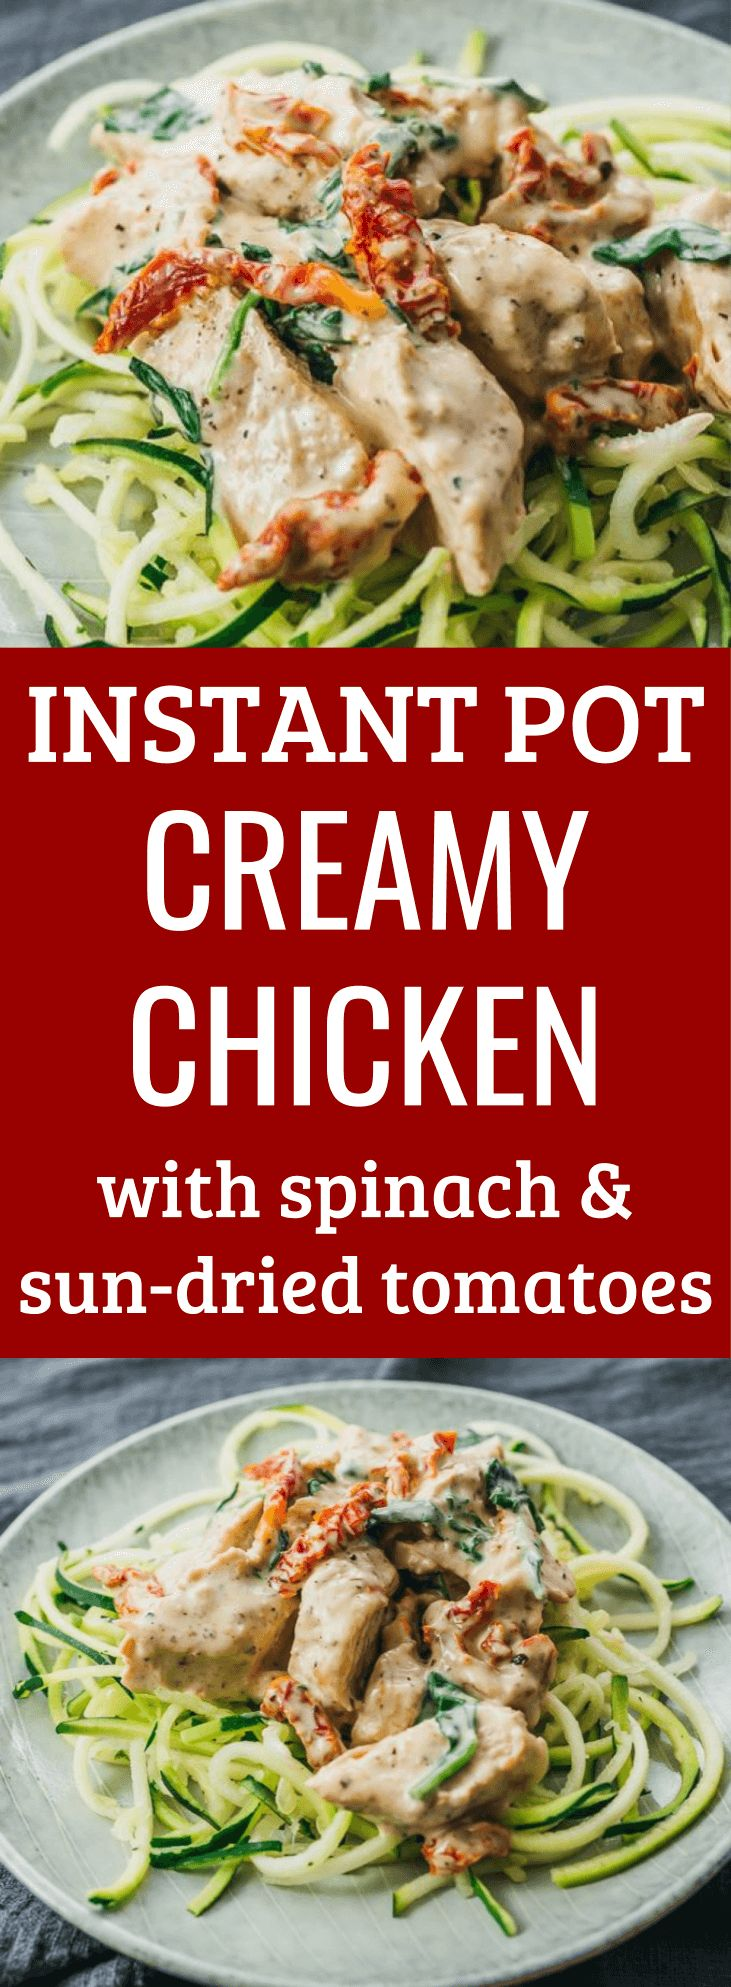 This is one of my favorite simple Instant Pot chicken recipes! It has a rich and…